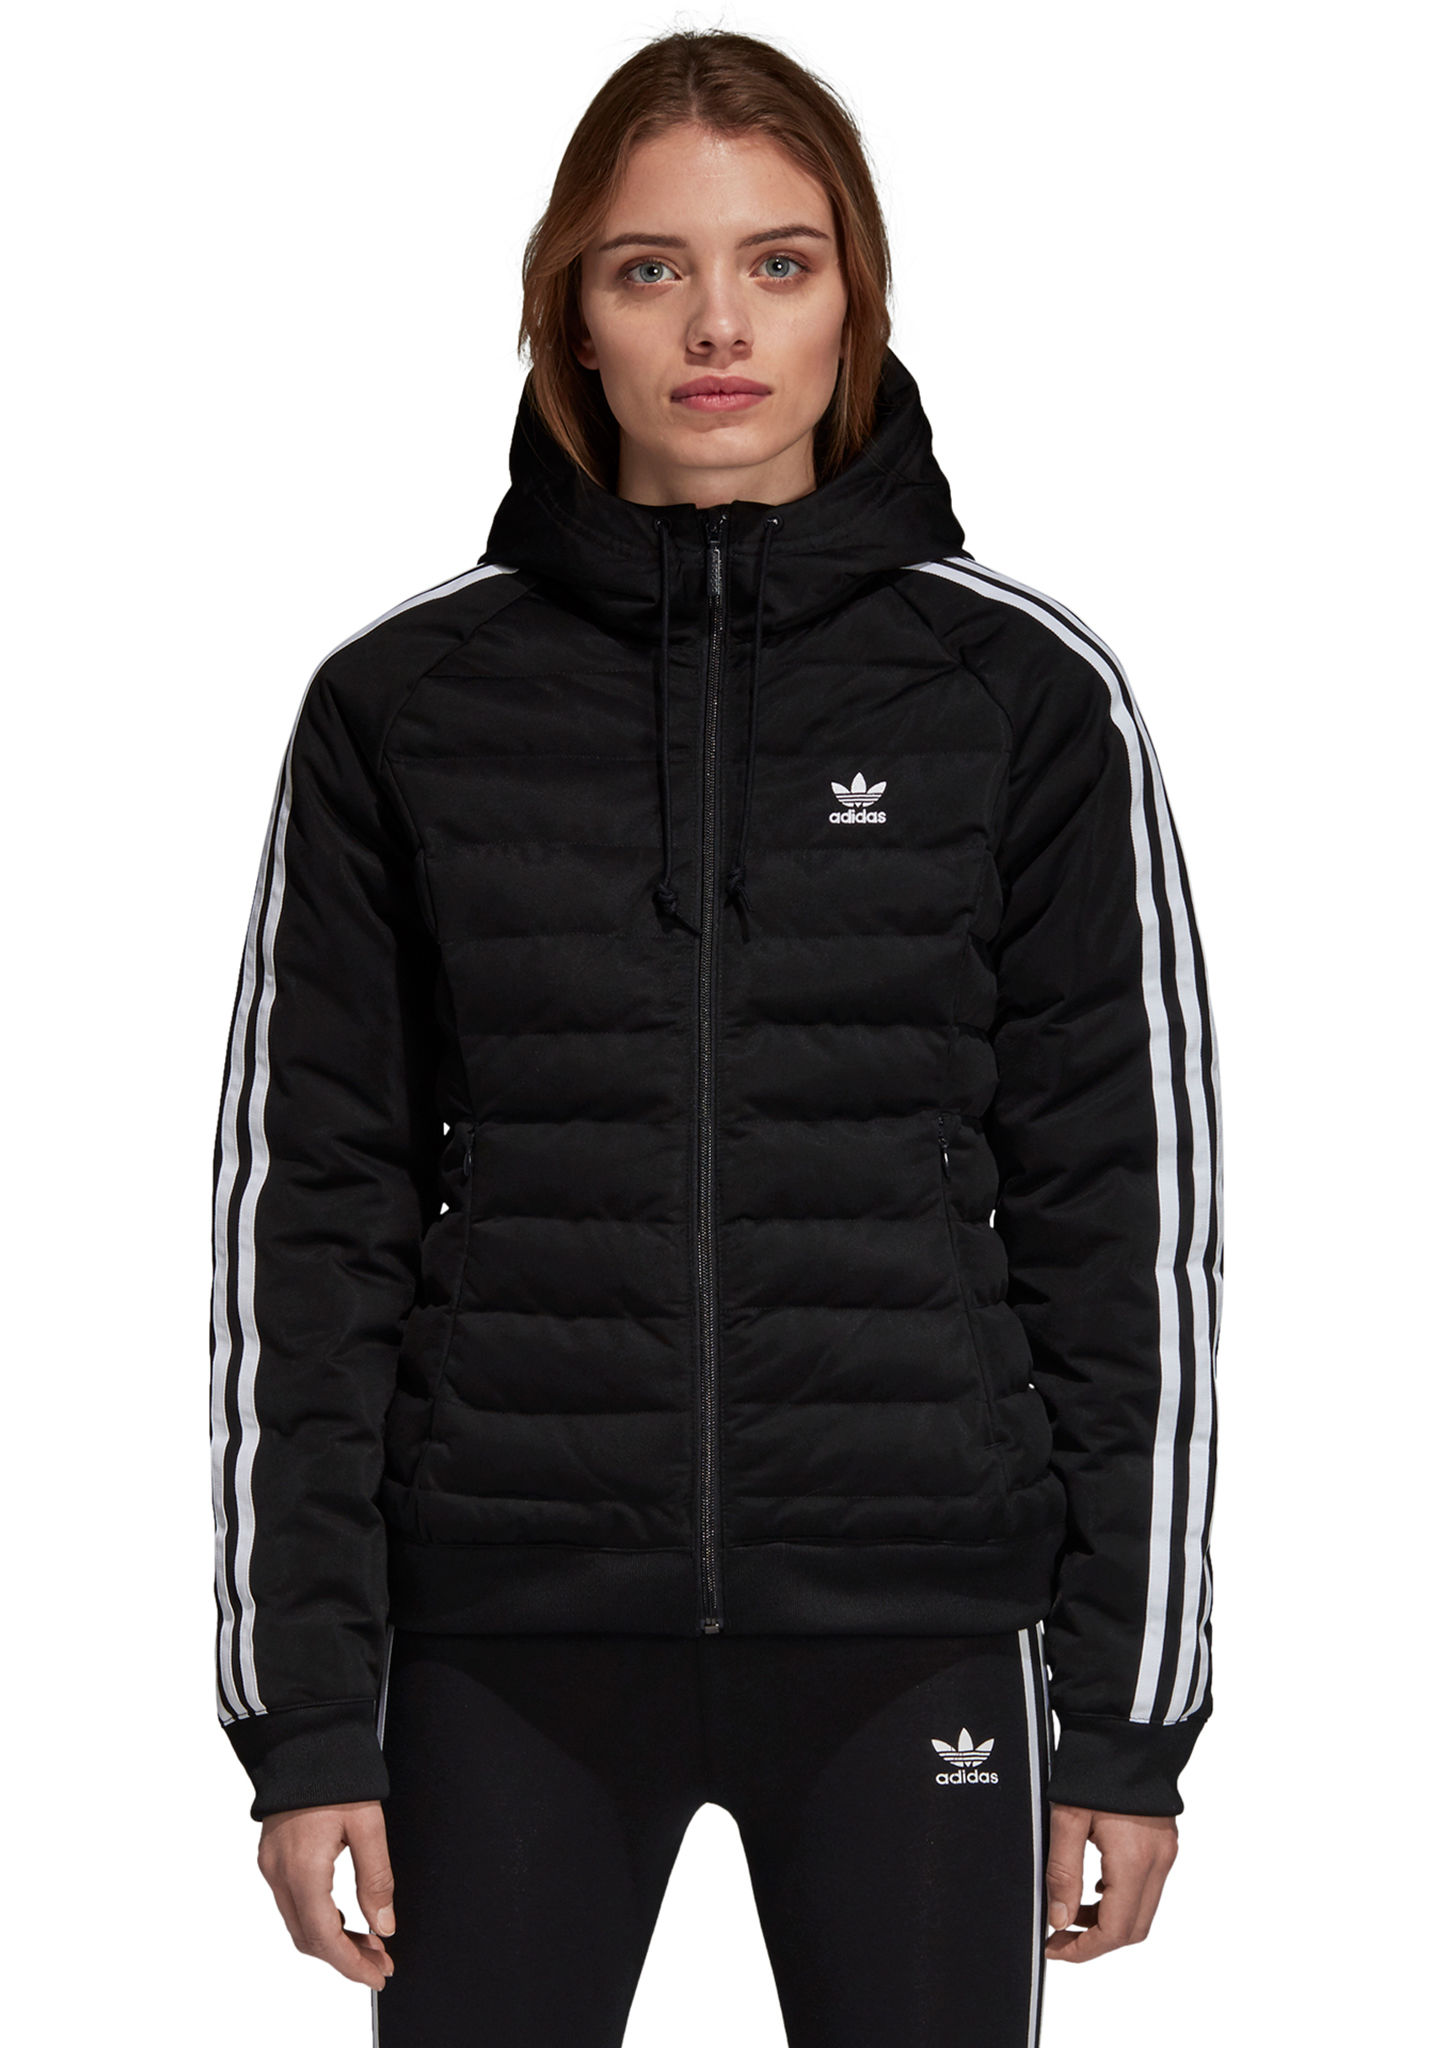 086e3915b815 ADIDAS ORIGINALS Slim - Jacket for Women - Black - Planet Sports